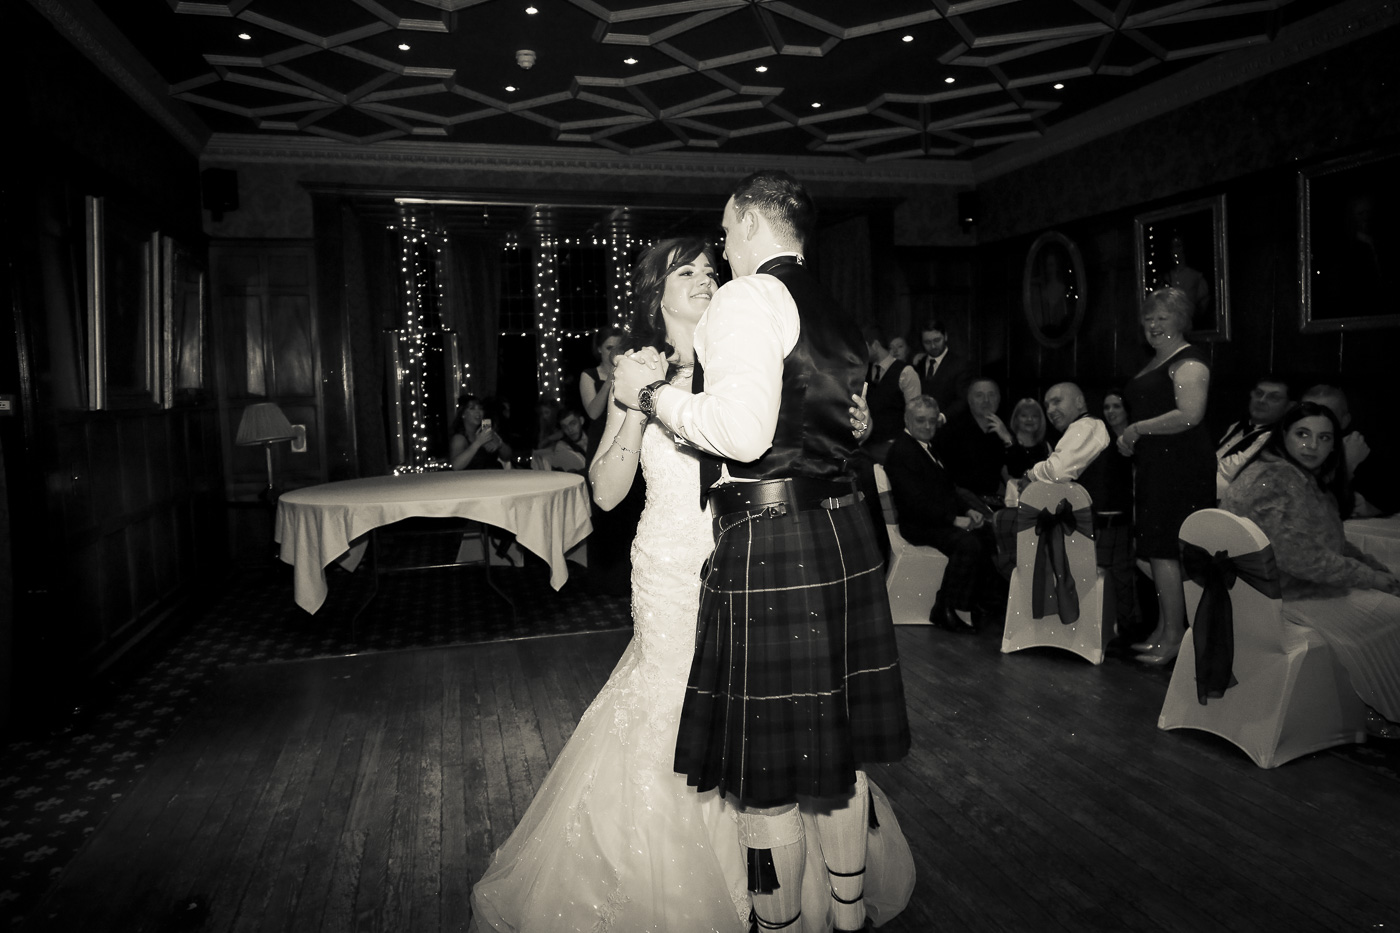 wedding-photography-at-bunchrew-house-inverness-9420-2